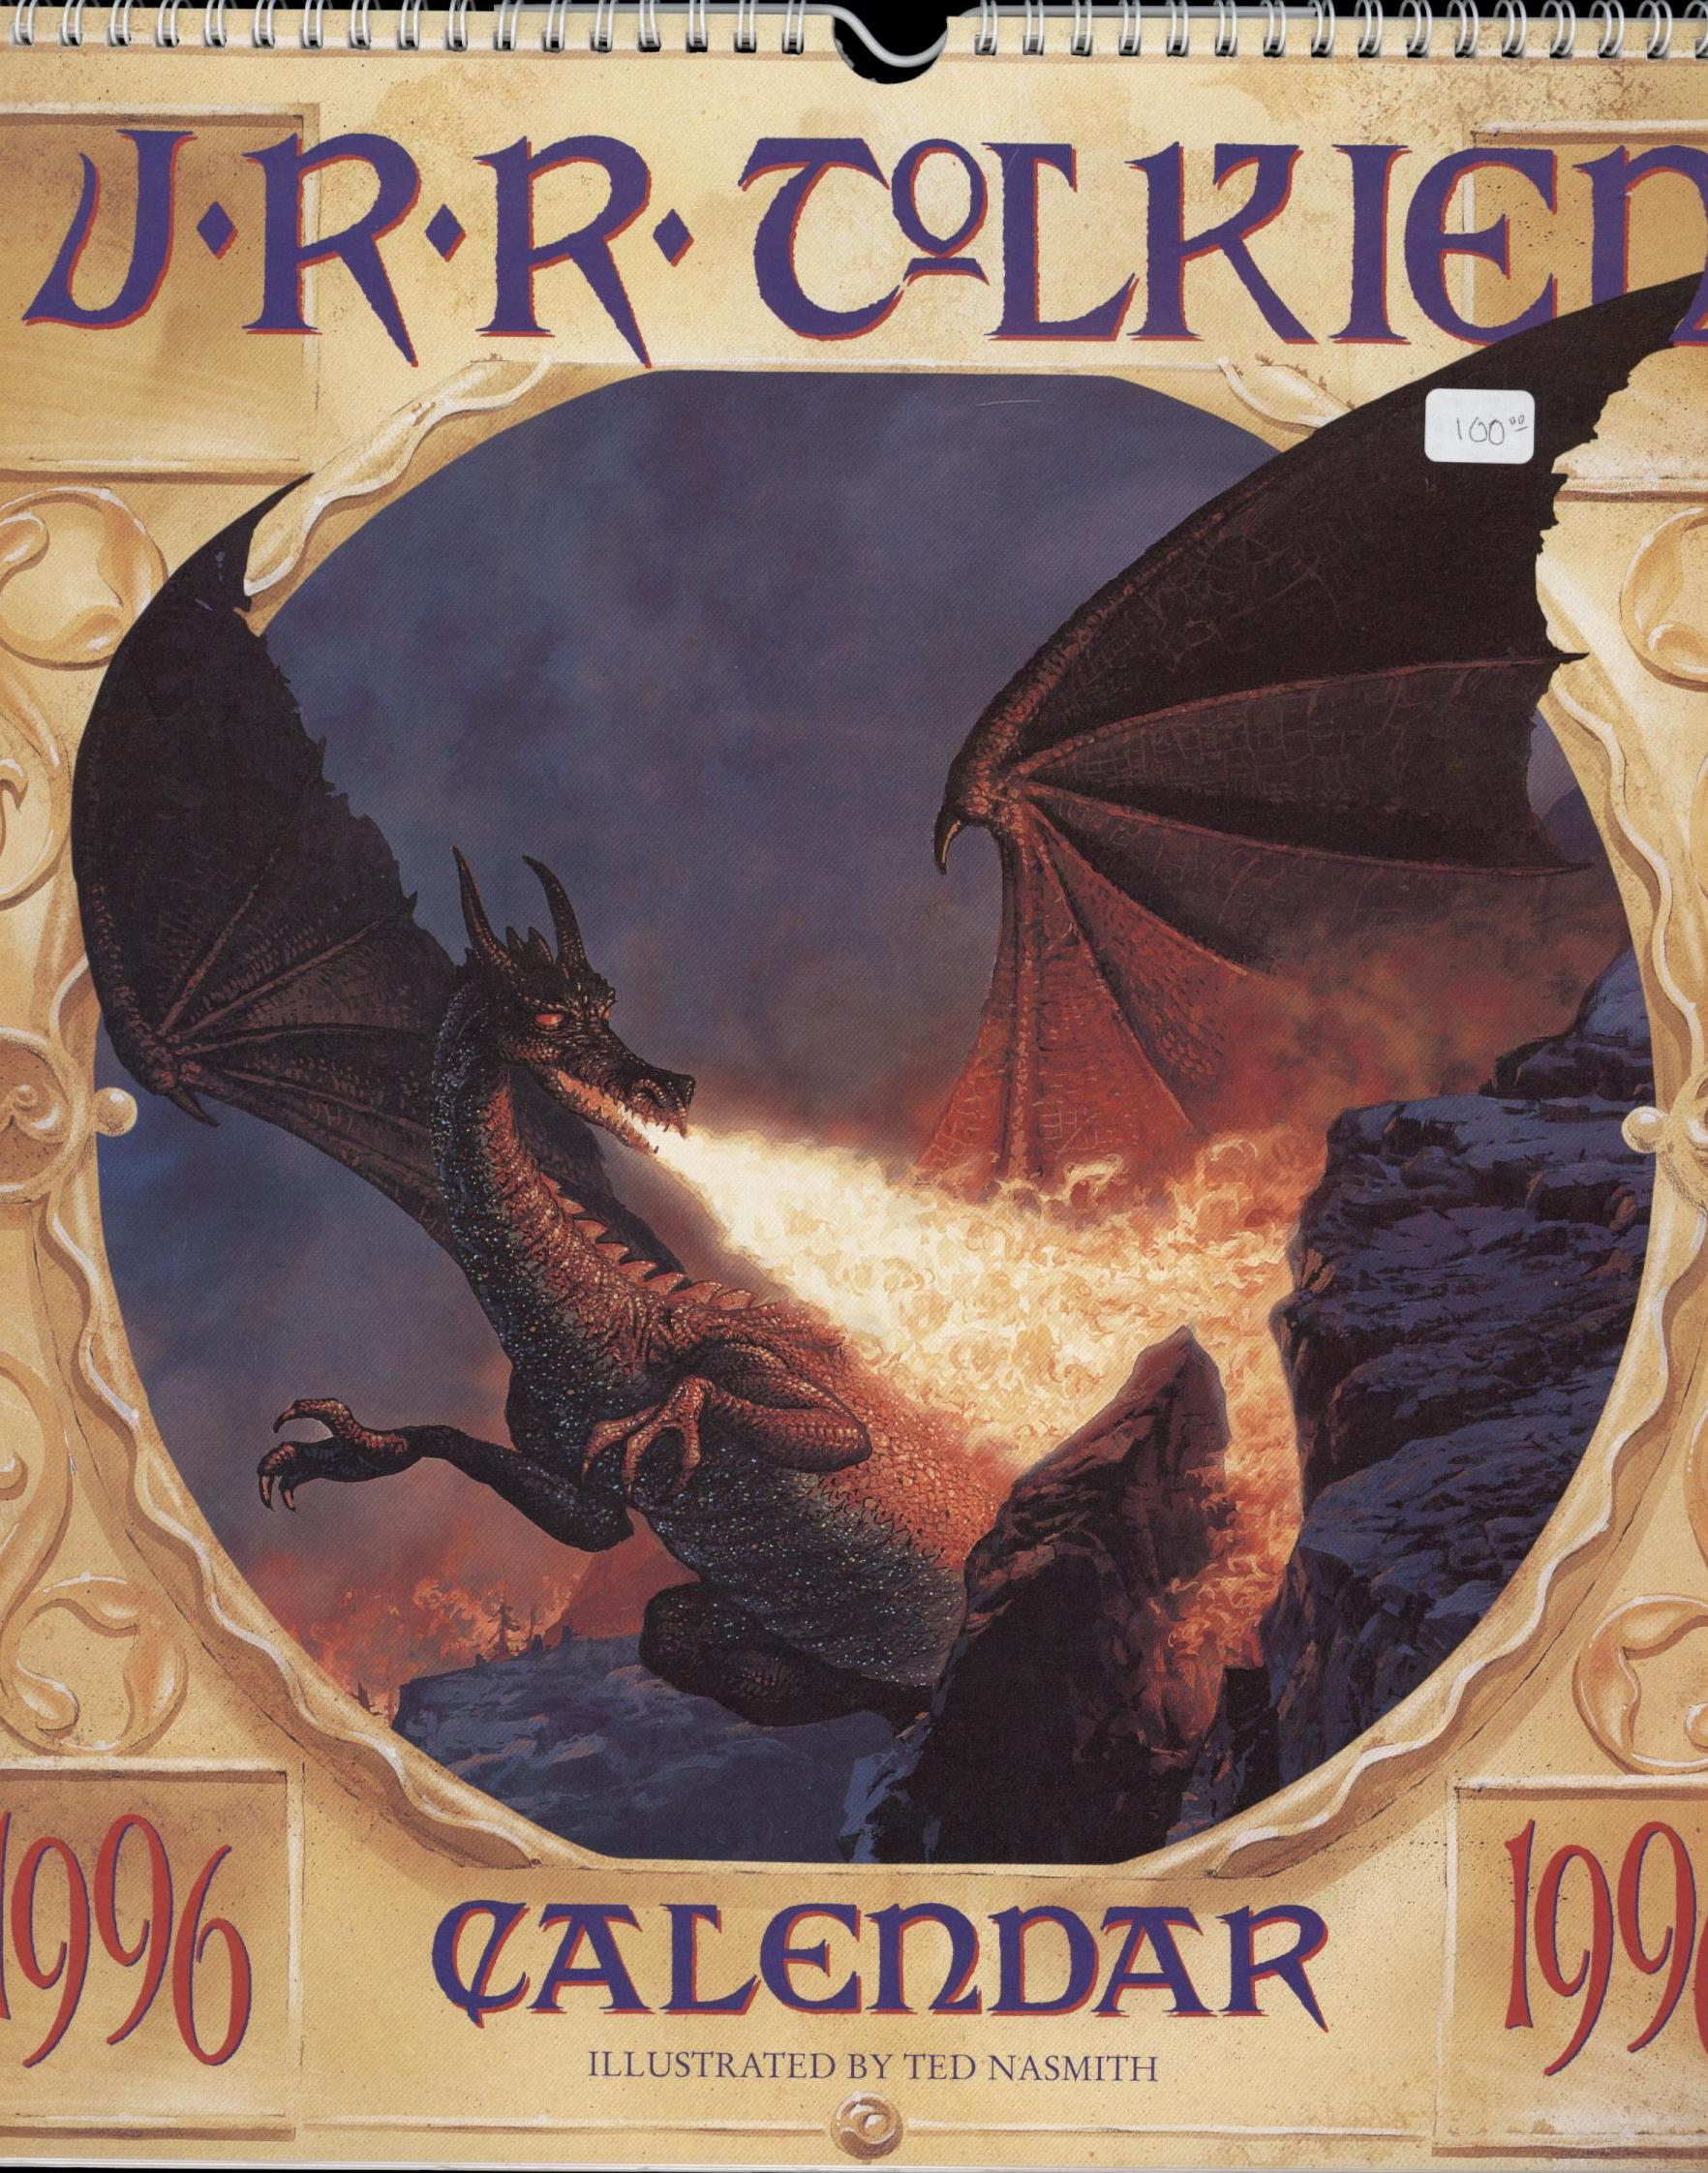 Image for 1996 J. R. R. TOLKIEN CALENDAR (First Edition)